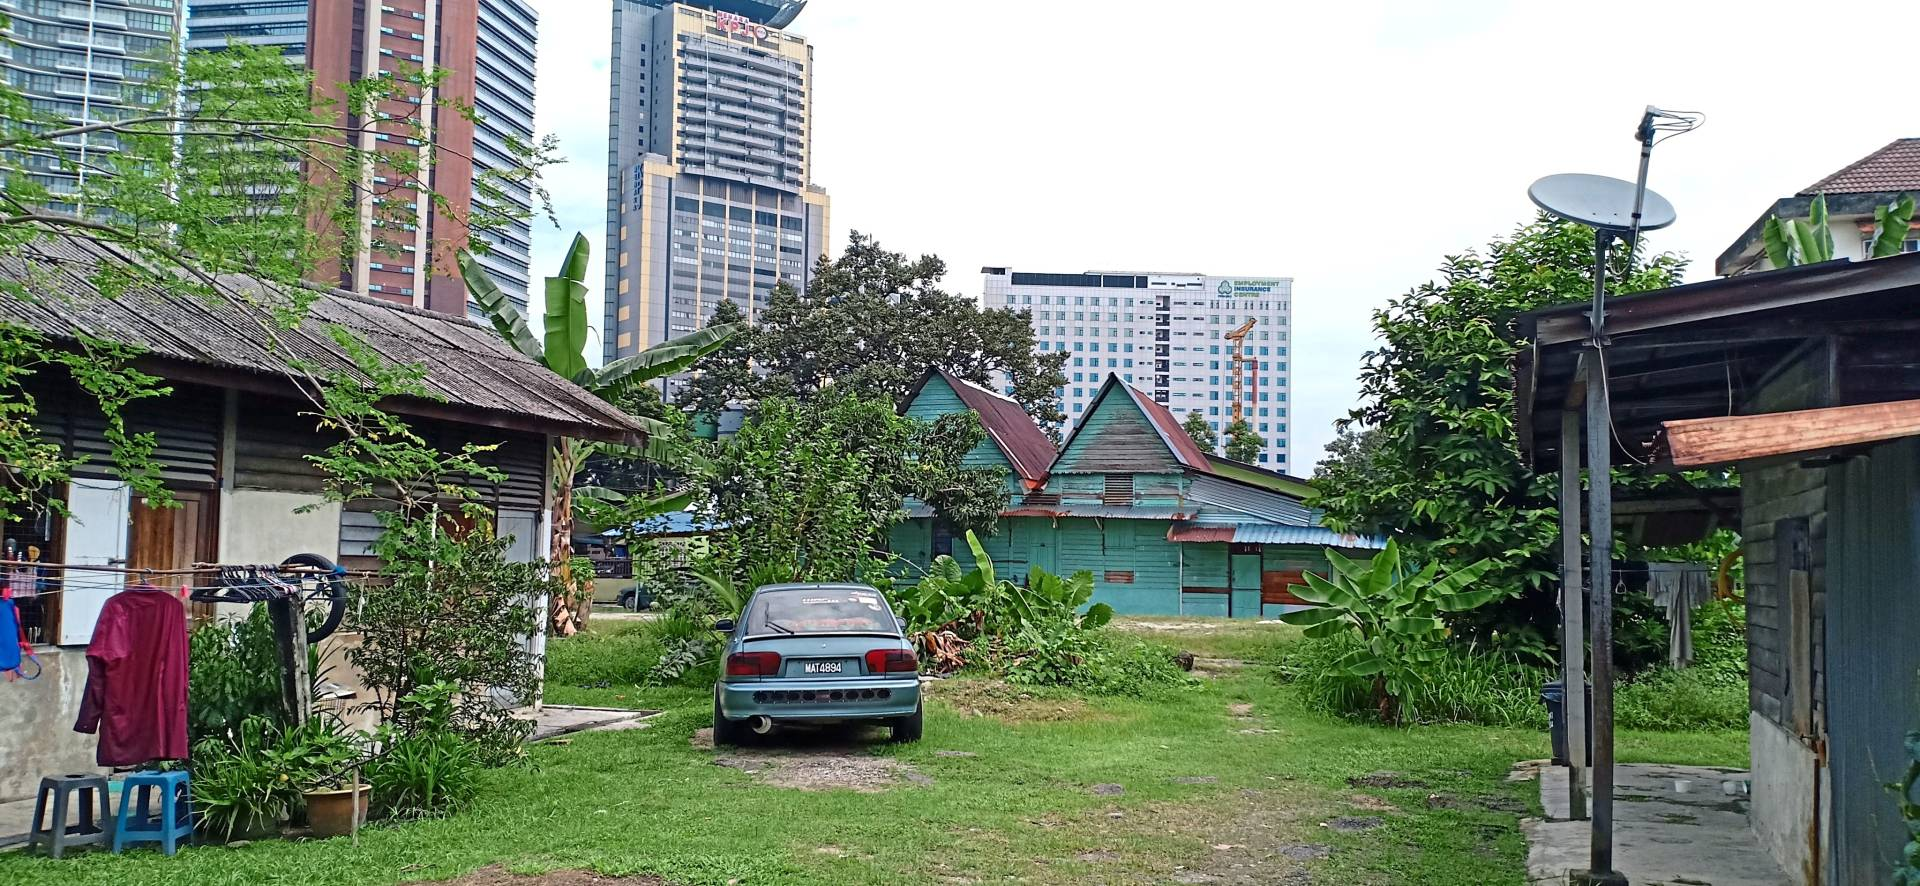 Wooden houses in Kampung Baru hark back to a time before Kuala Lumpur became  a bustling metropolis.